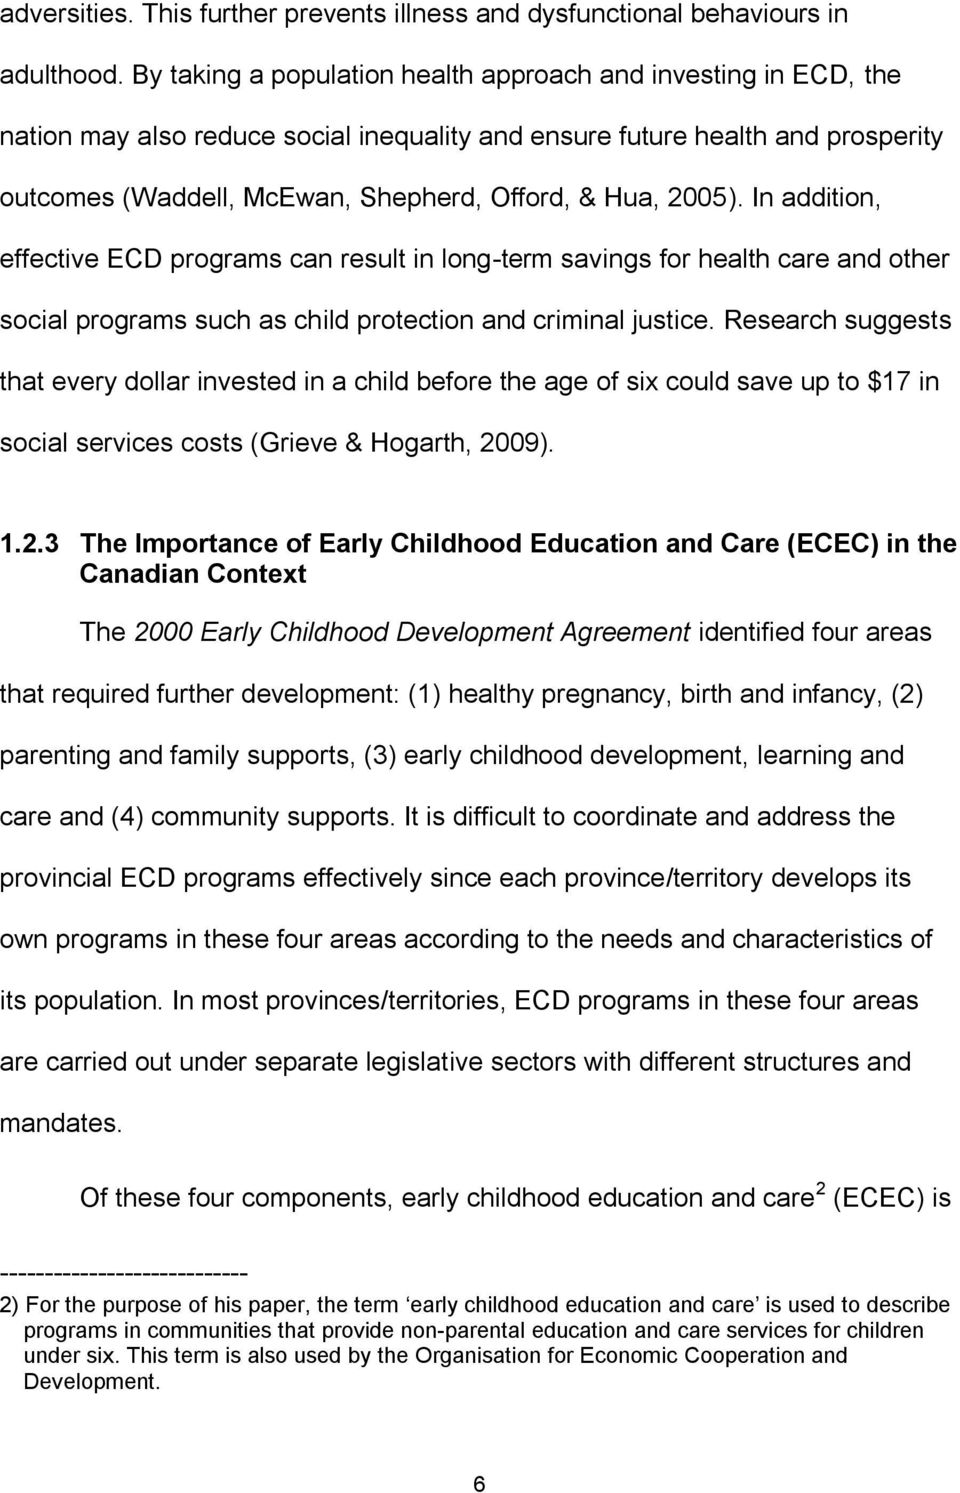 2005). In addition, effective ECD programs can result in long-term savings for health care and other social programs such as child protection and criminal justice.